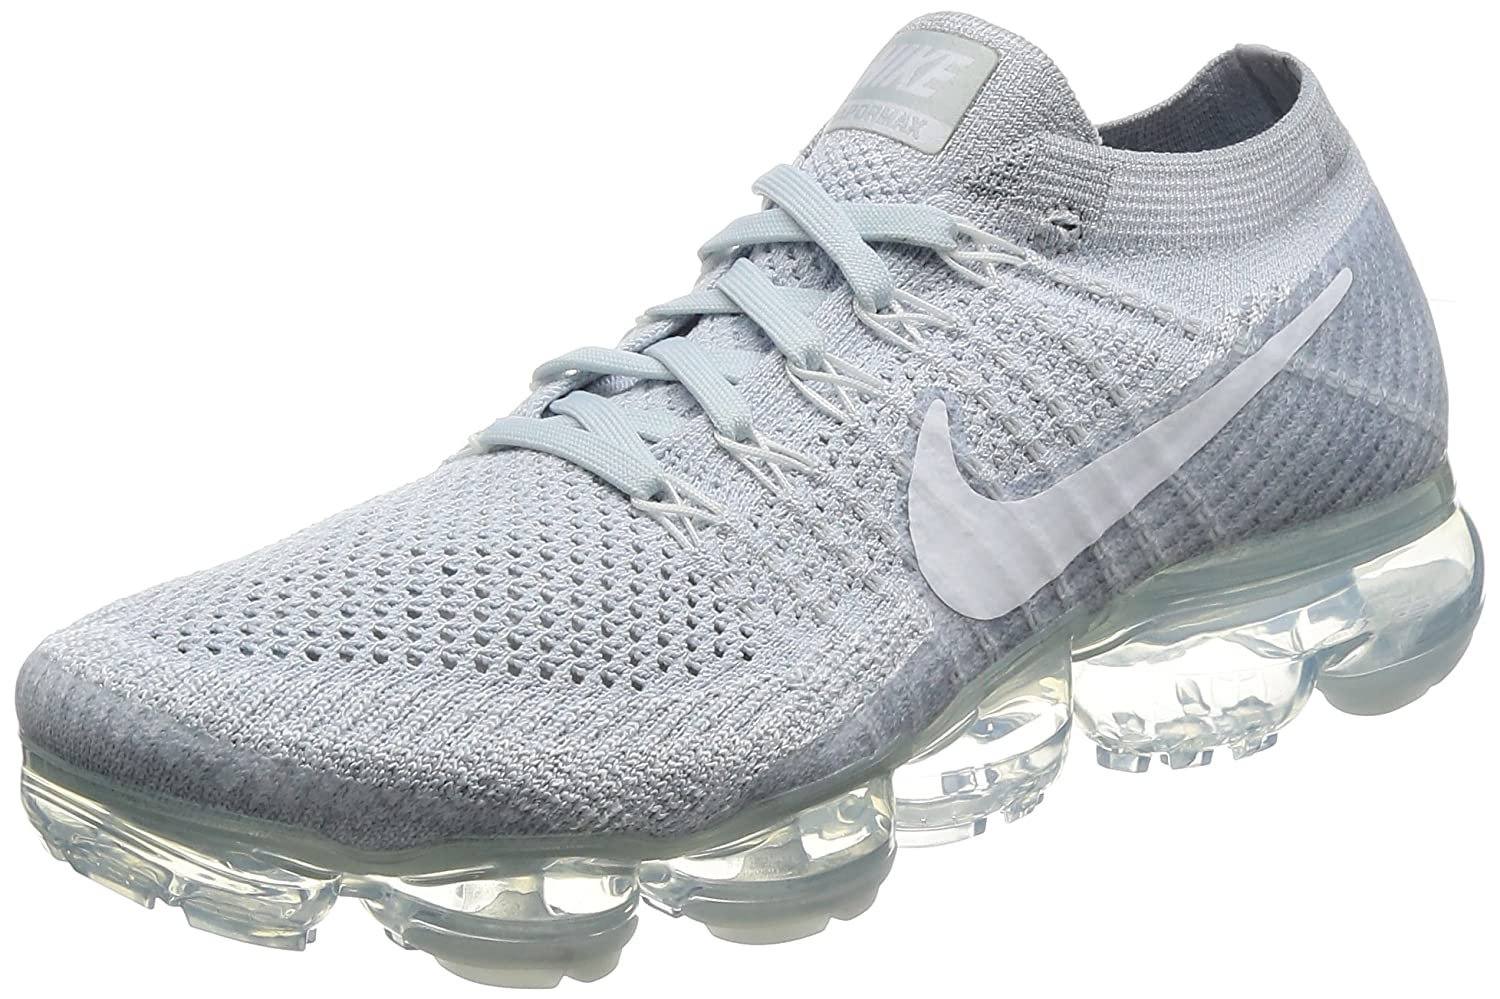 premium selection 8a137 b591b Amazon.com  Mens Nike Air Vapormax Flyknit Running Shoe  Fashion Sneakers